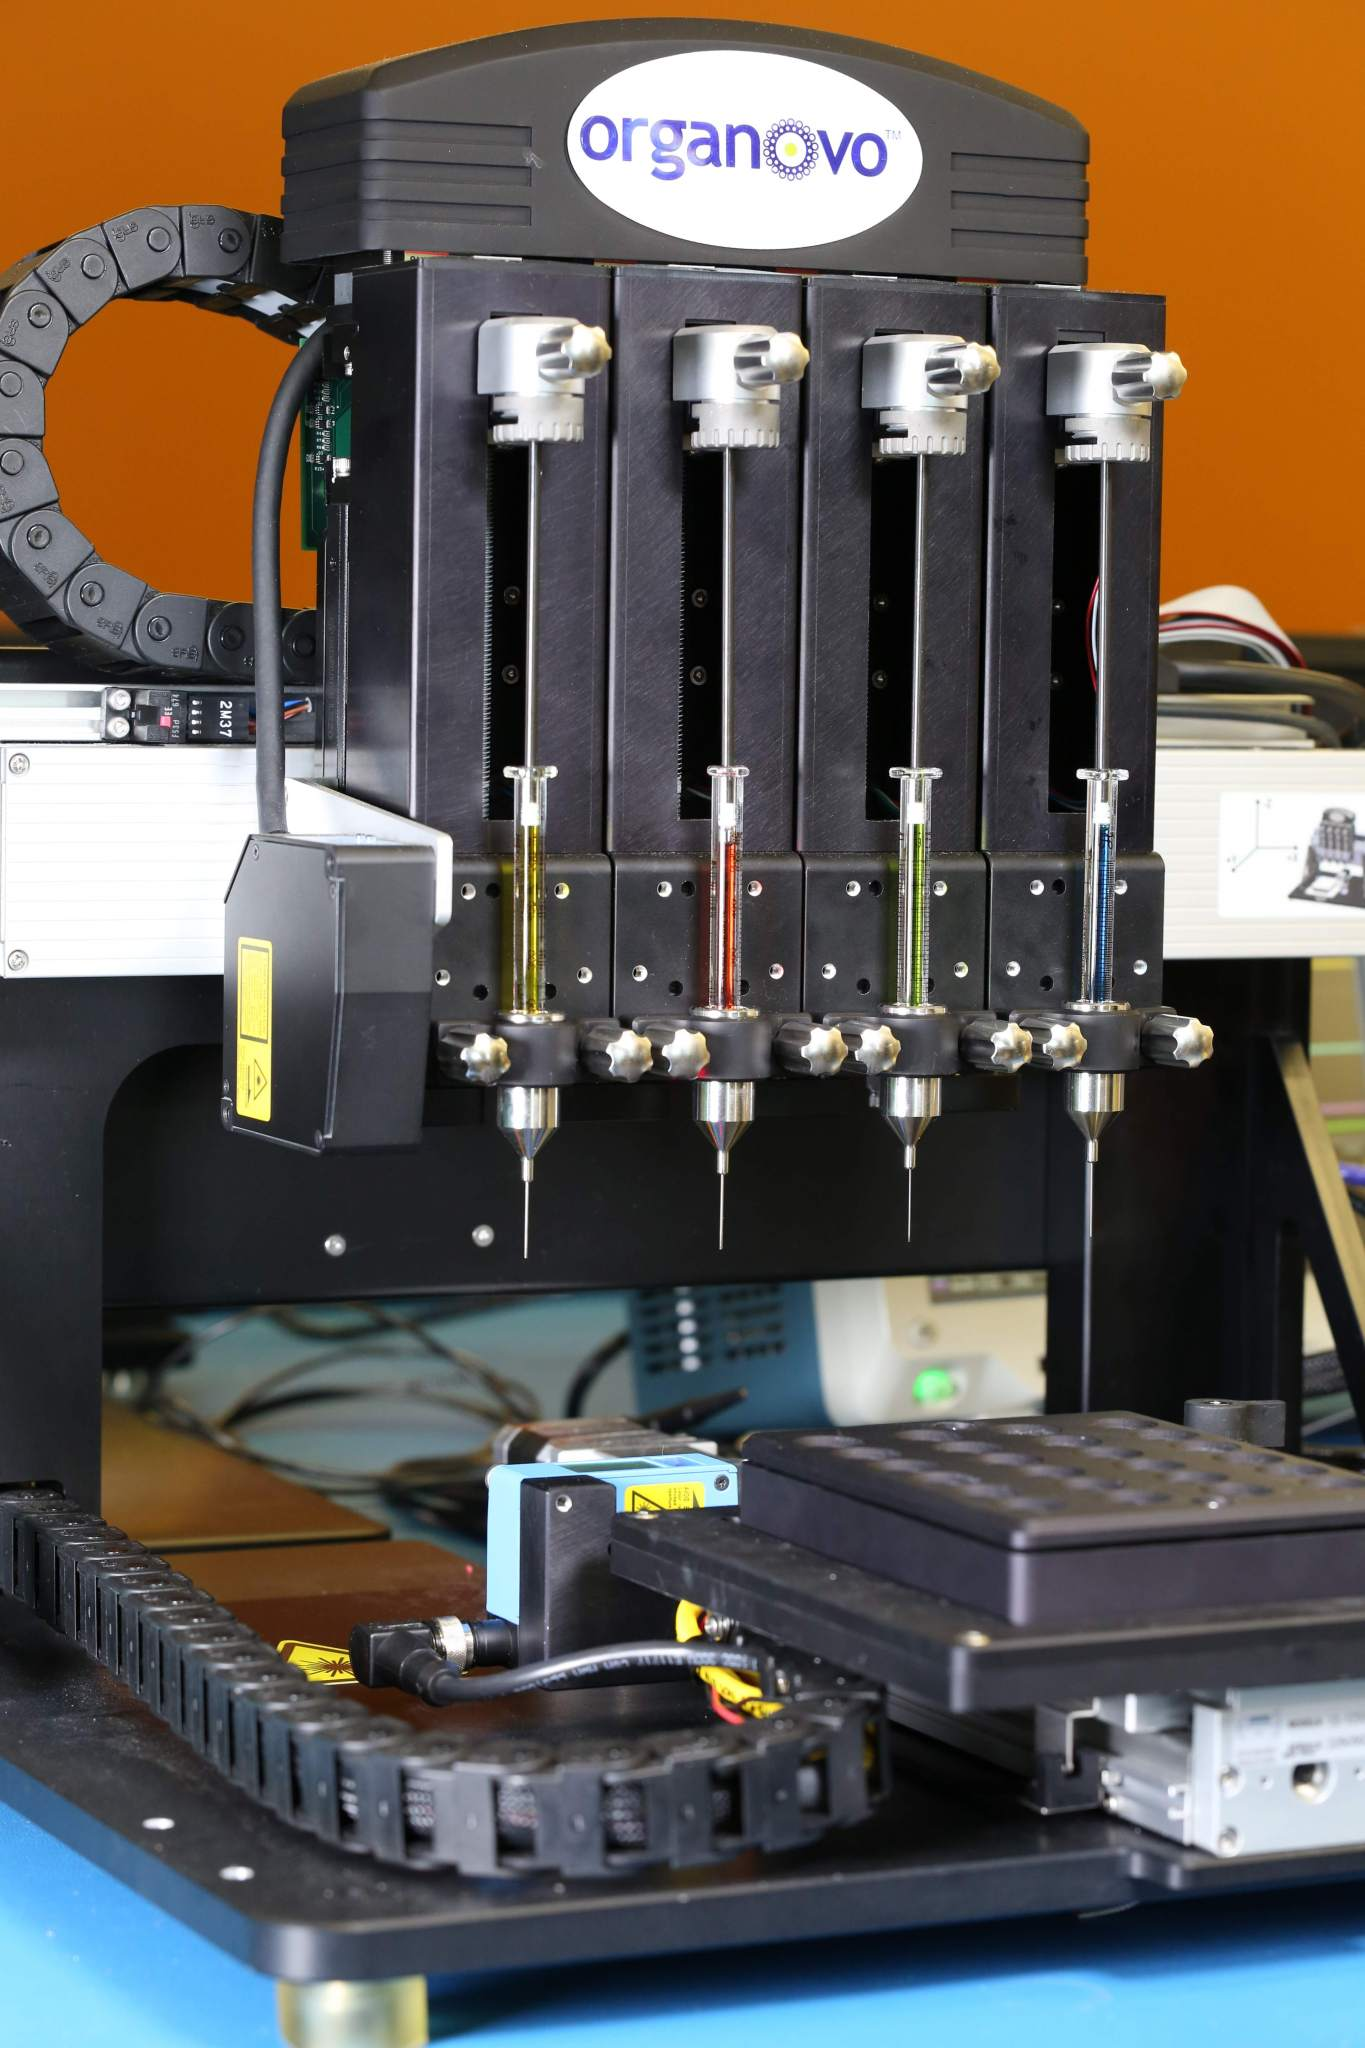 Organovo Bioprinter